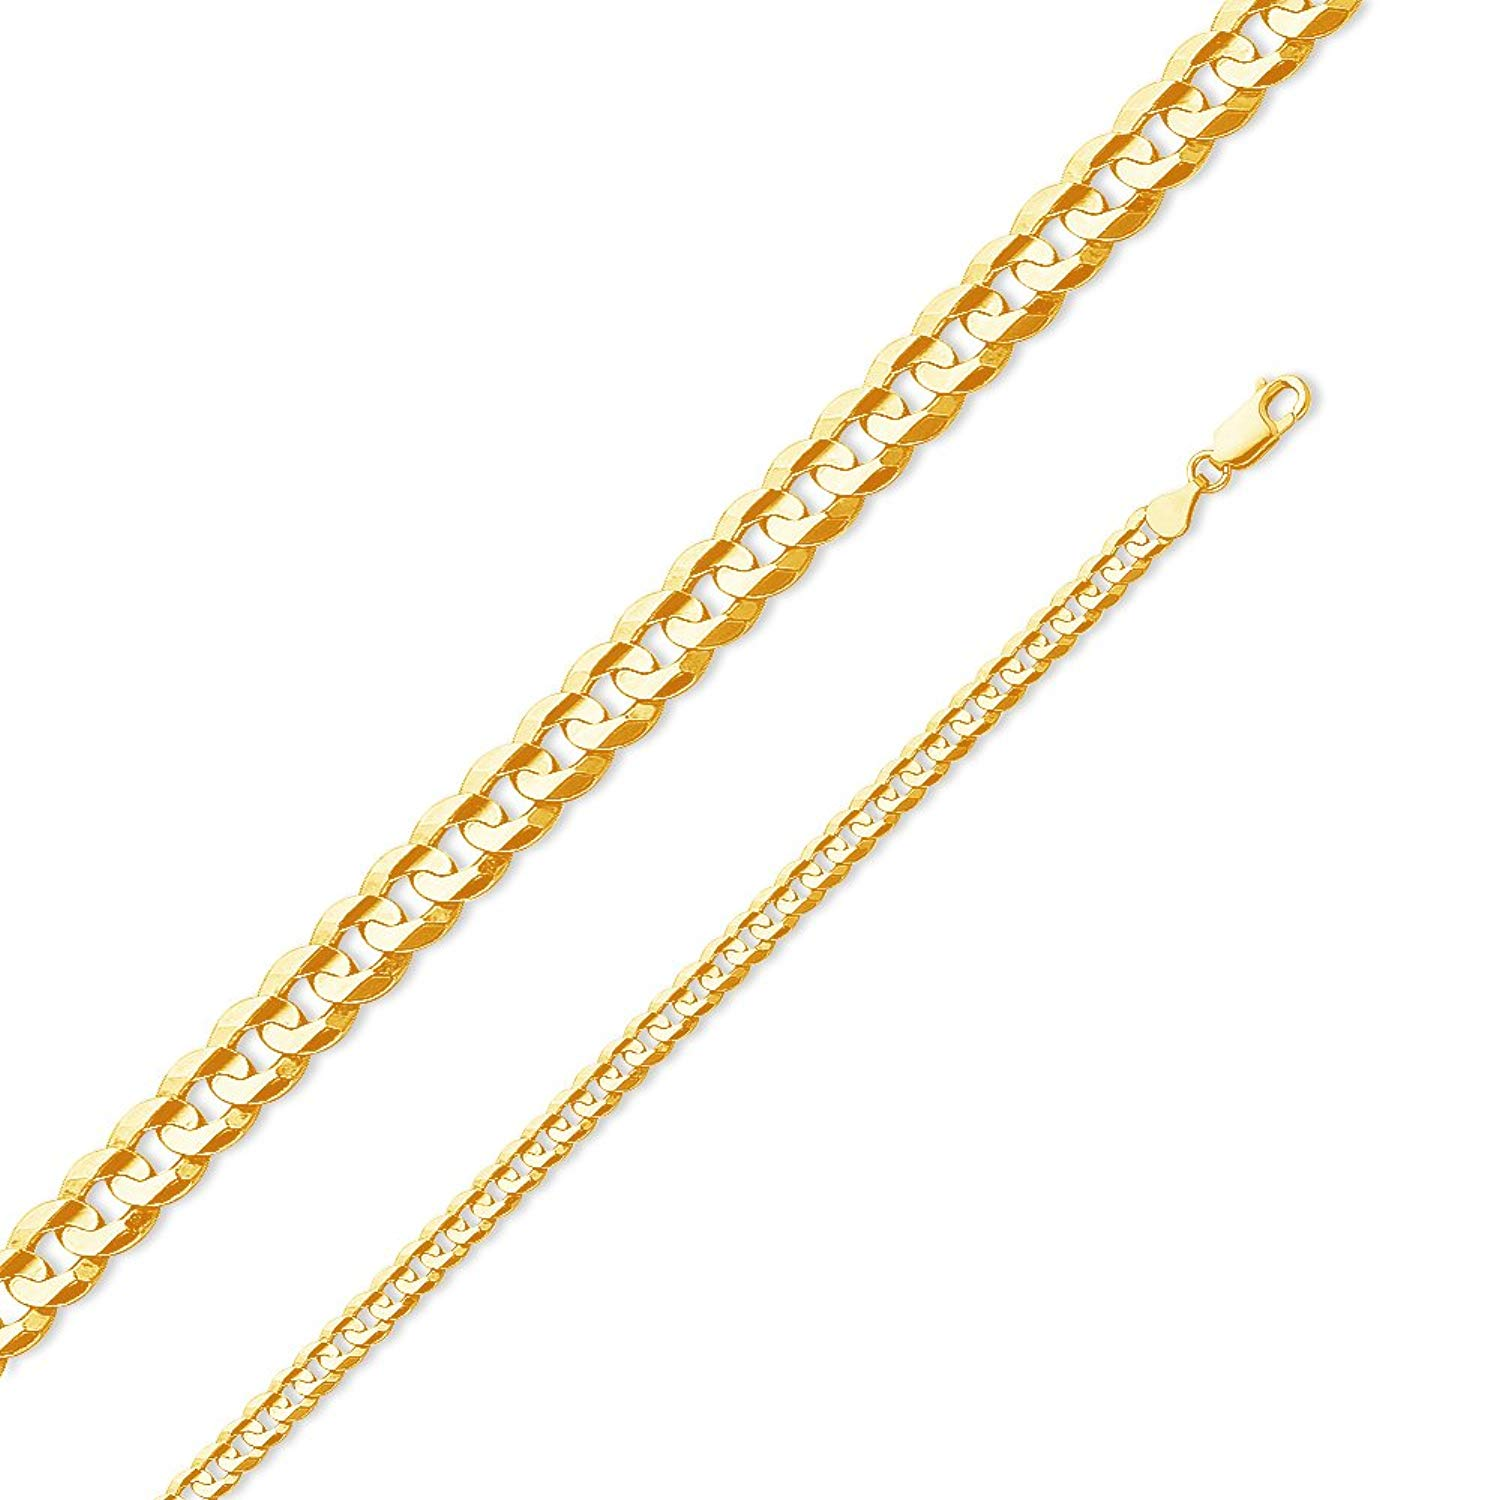 Jewel Tie Solid 14K Yellow Gold Solid 4.5mm Cuban Concaved Curb Necklace Chain